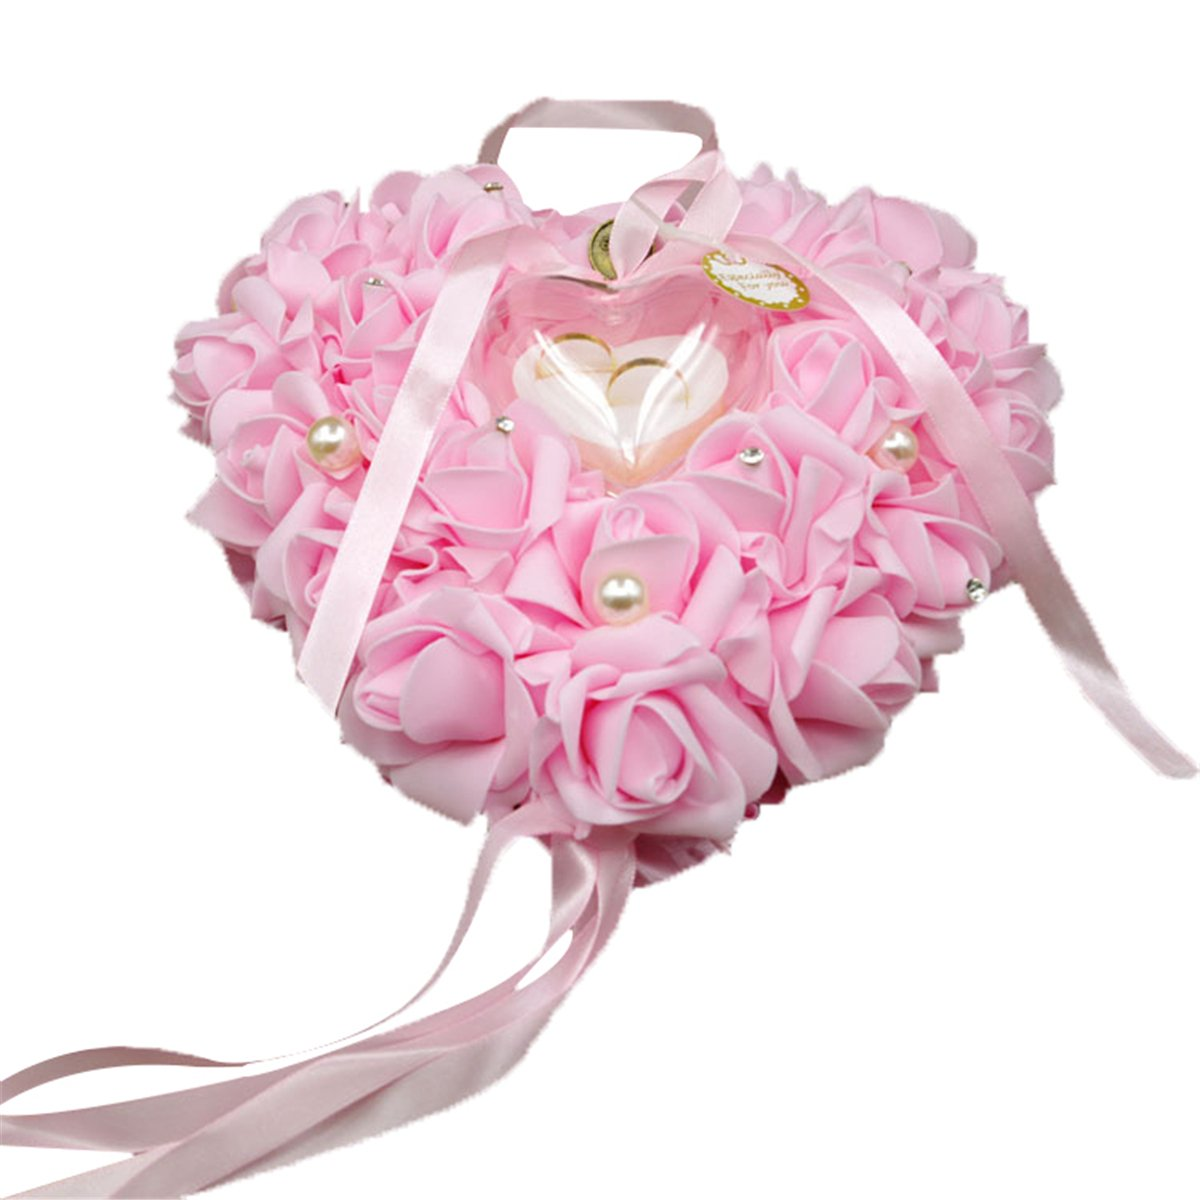 Wedding Ring Pillow, Funpa Heart Ring Pillow Romantic Hanging Rose Heart Party Favor for Wedding